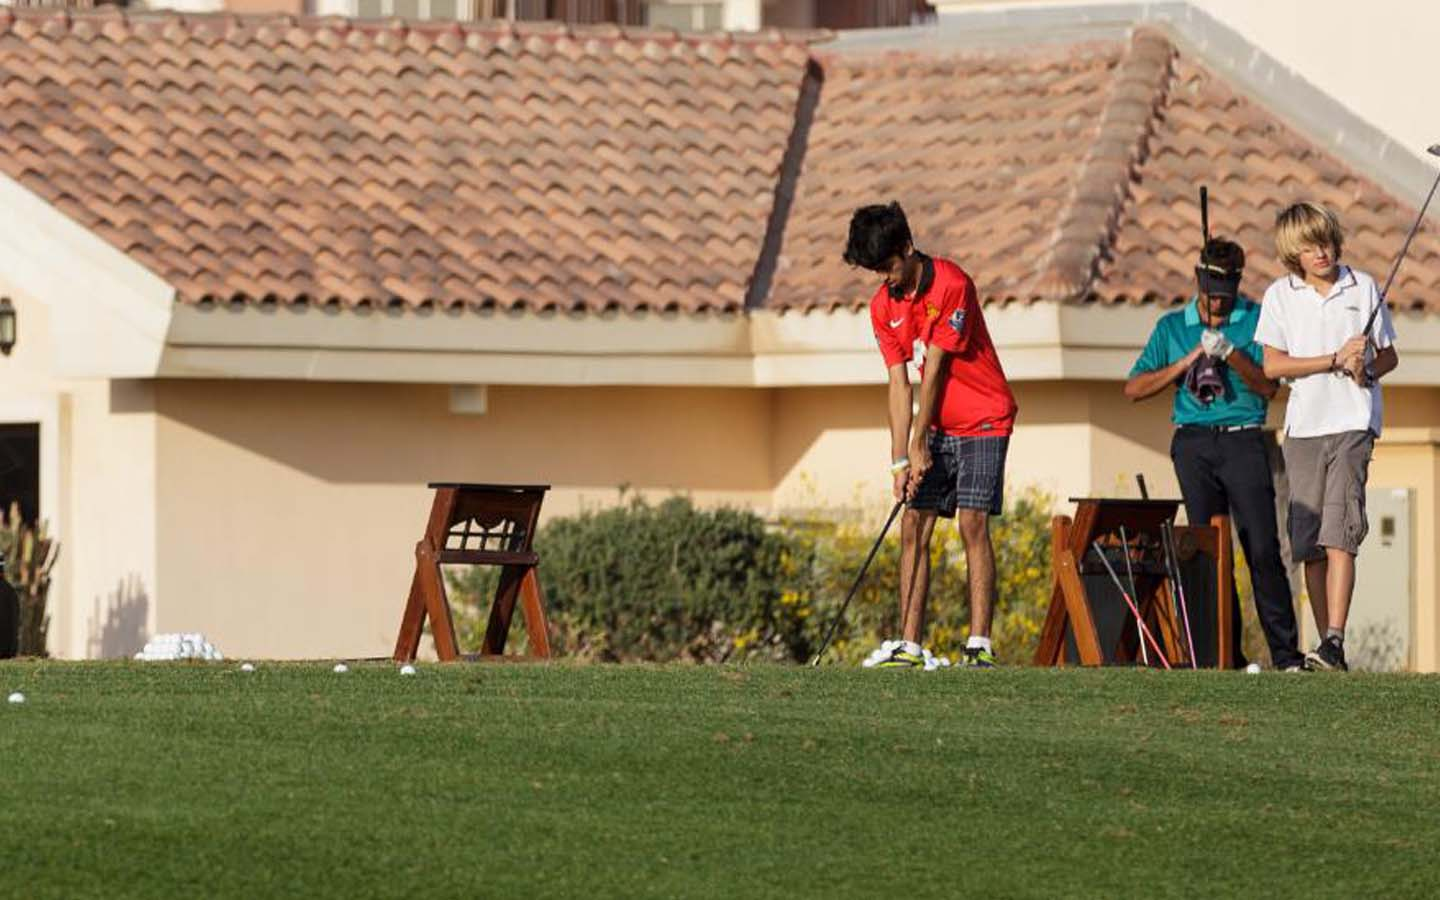 A child is playing golf